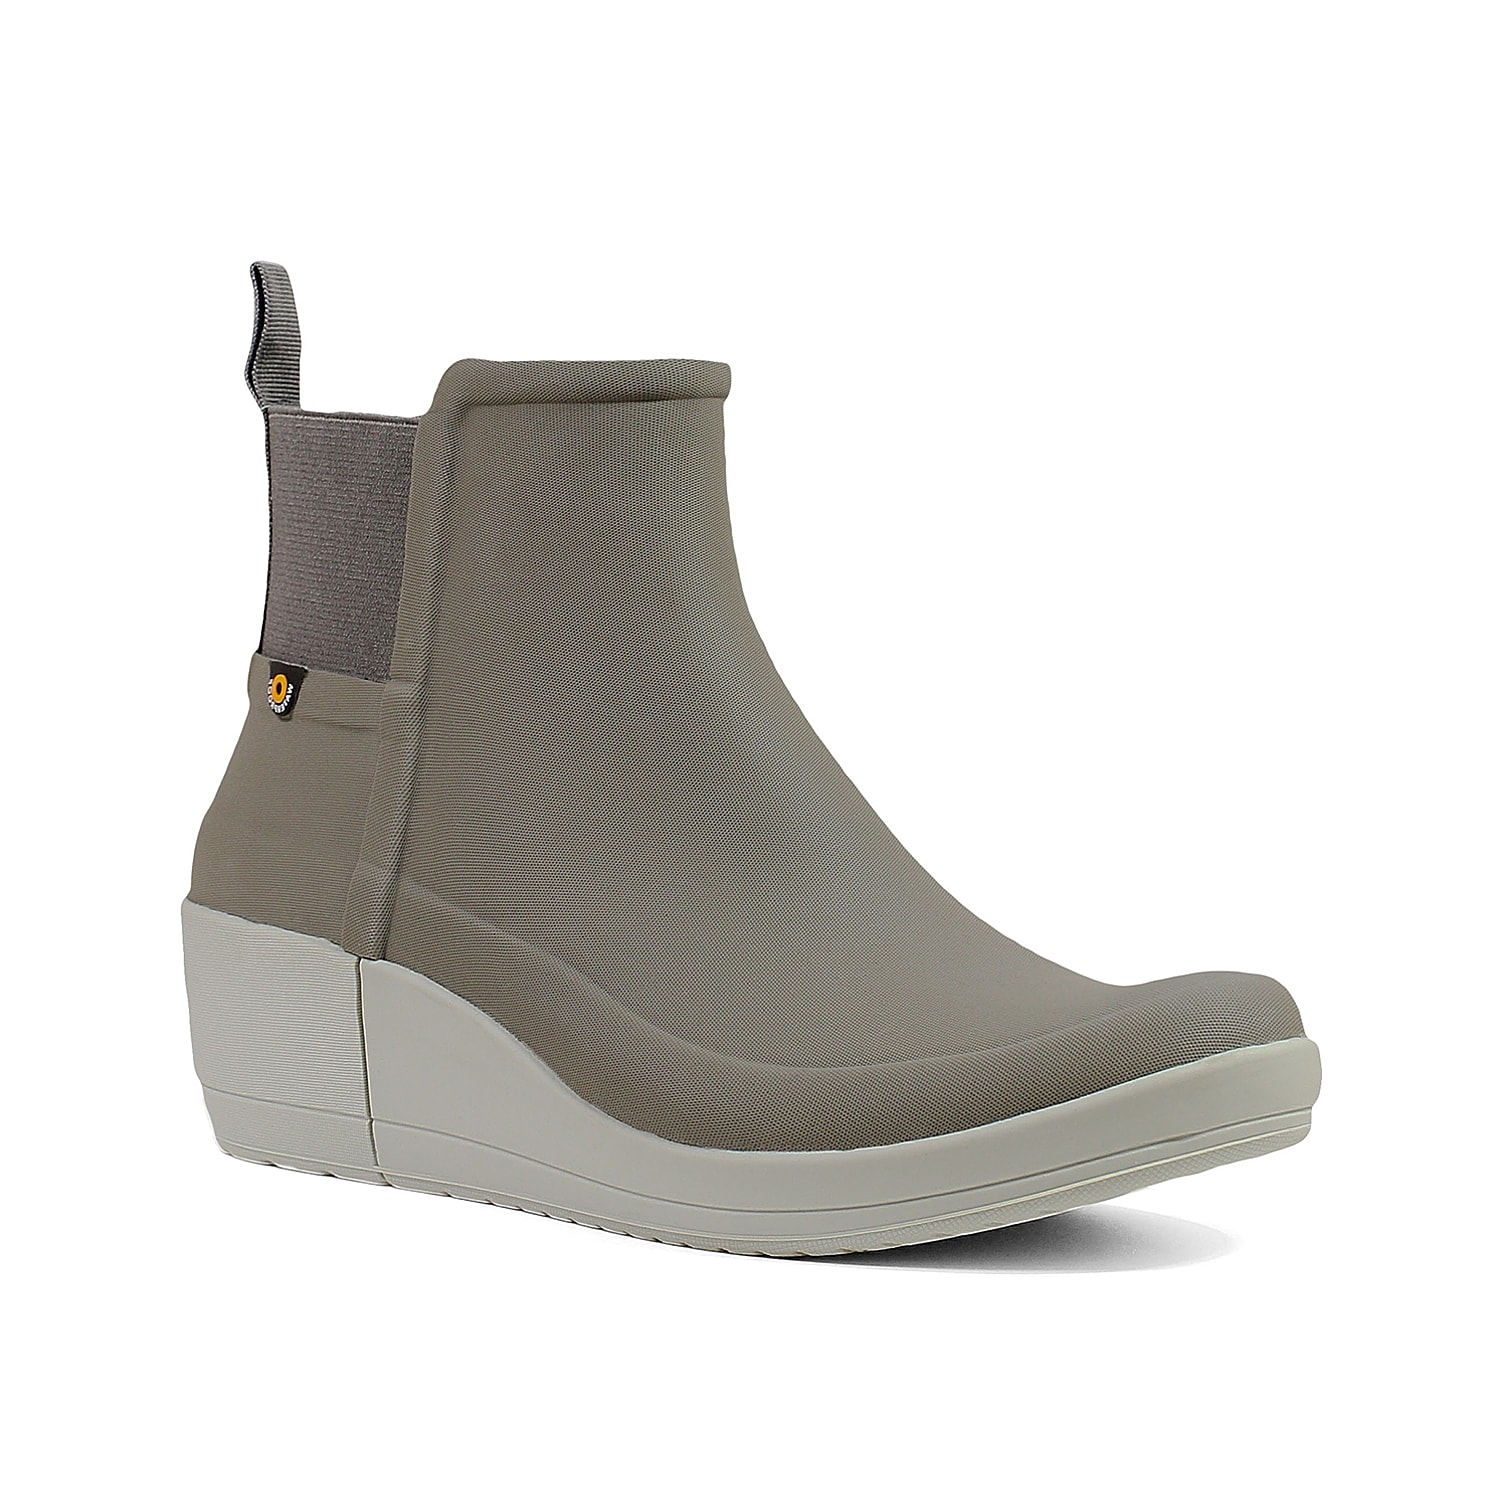 Amp up your rainy day style with the Vista wedge boot from Bogs. This ankle bootie features a waterproof rubber construction and DuraFresh anti-odor technology to keep you feeling dry and fresh all day. Click here for Boot Measuring Guide.